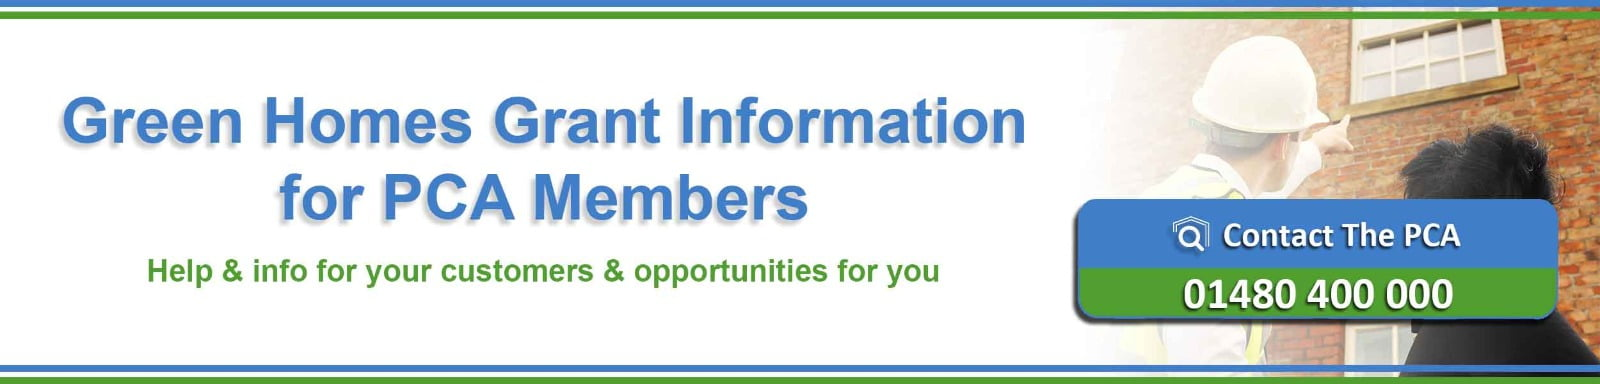 Green Homes Geant information hub for PCA members